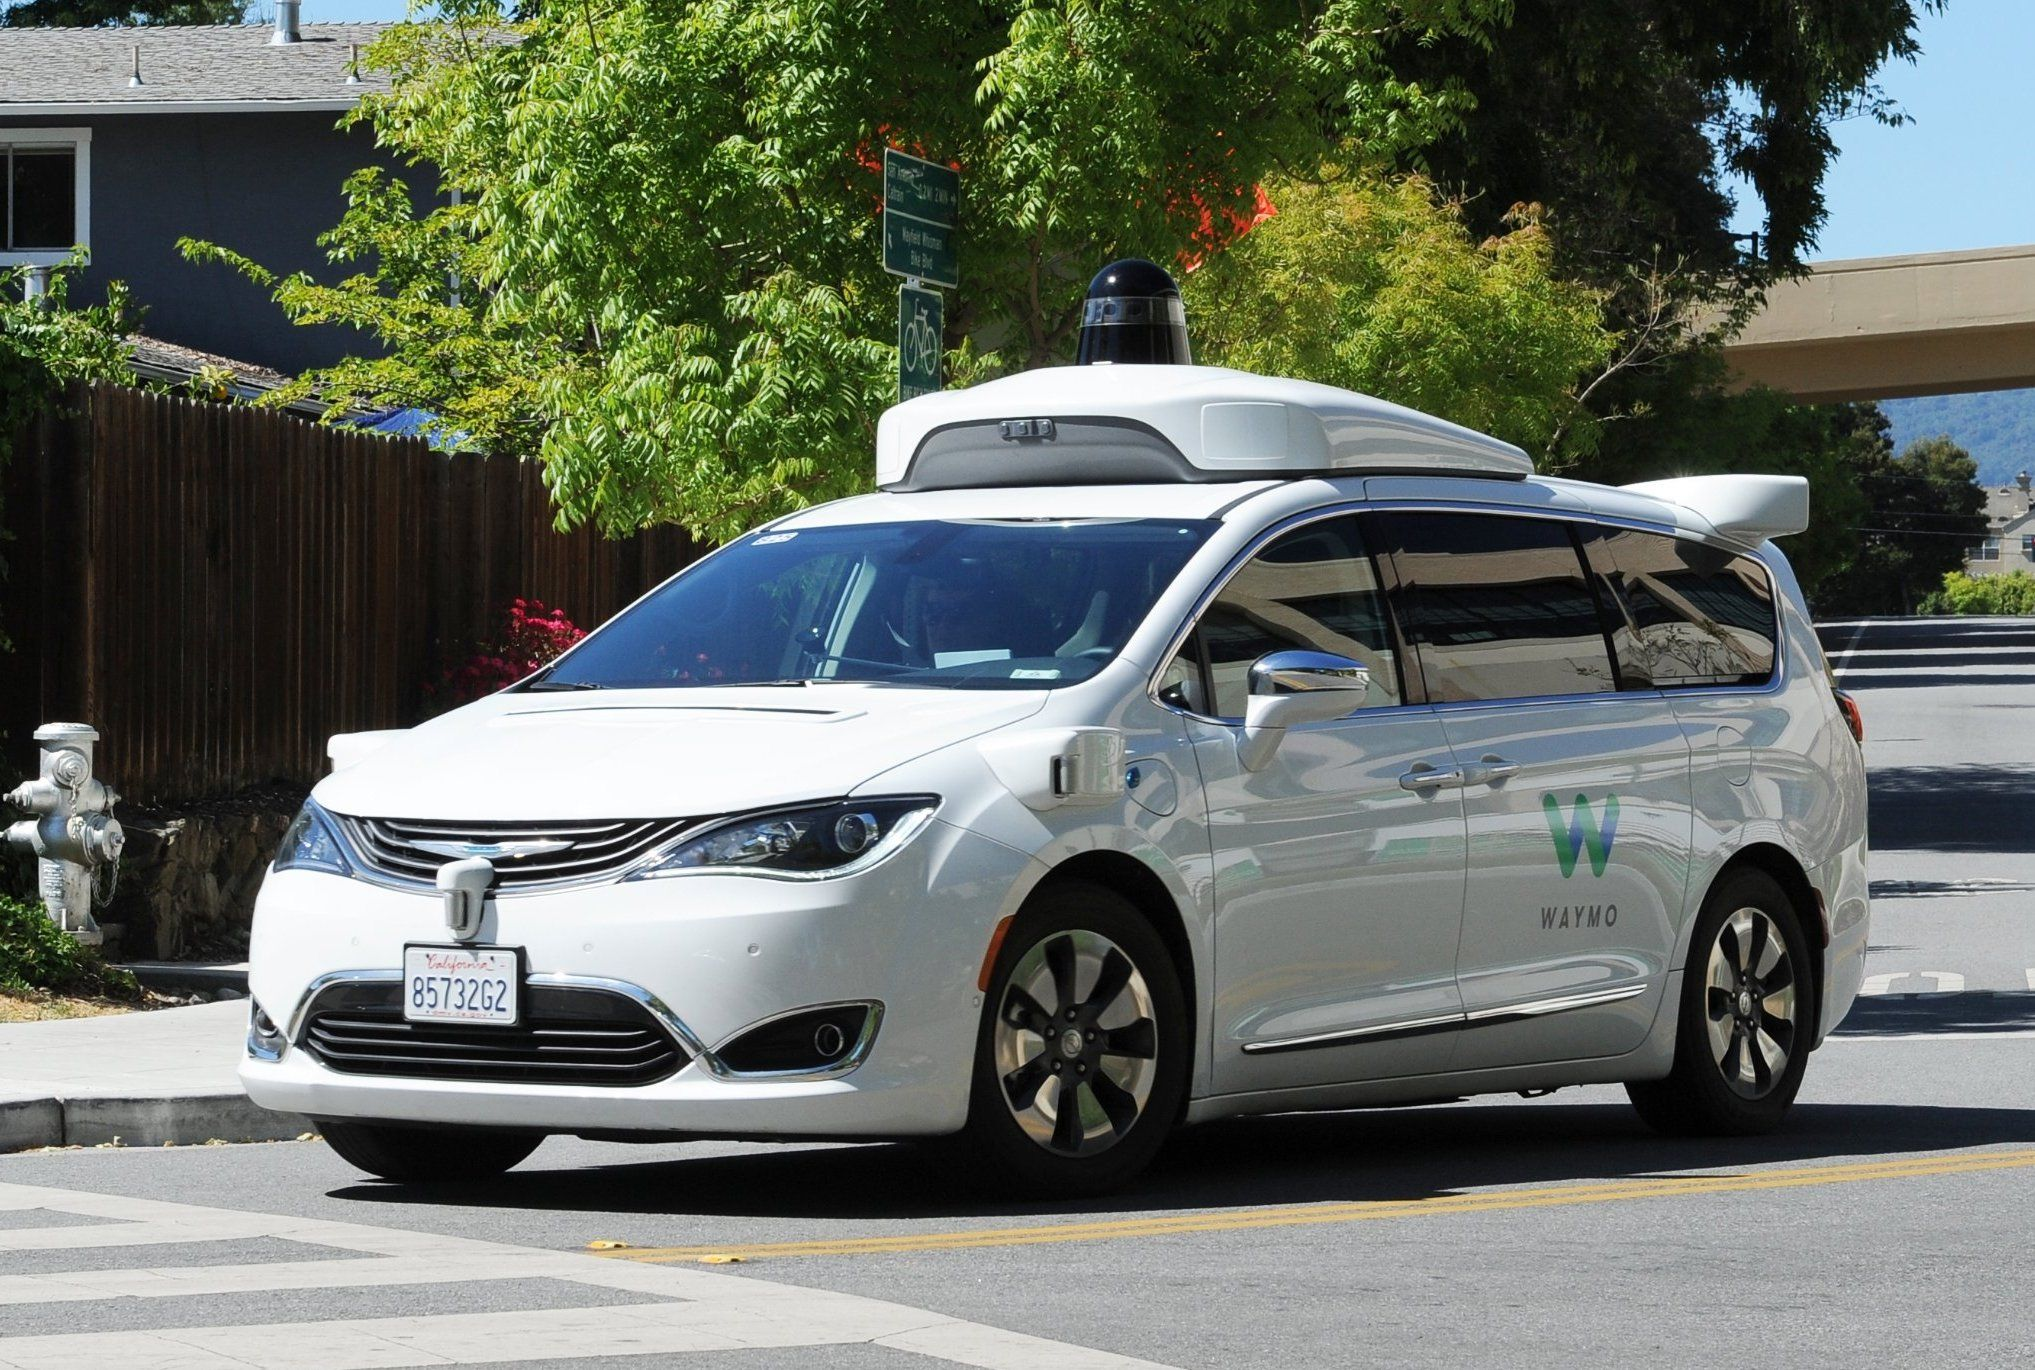 Waymo taxis on the way? California green-lights test